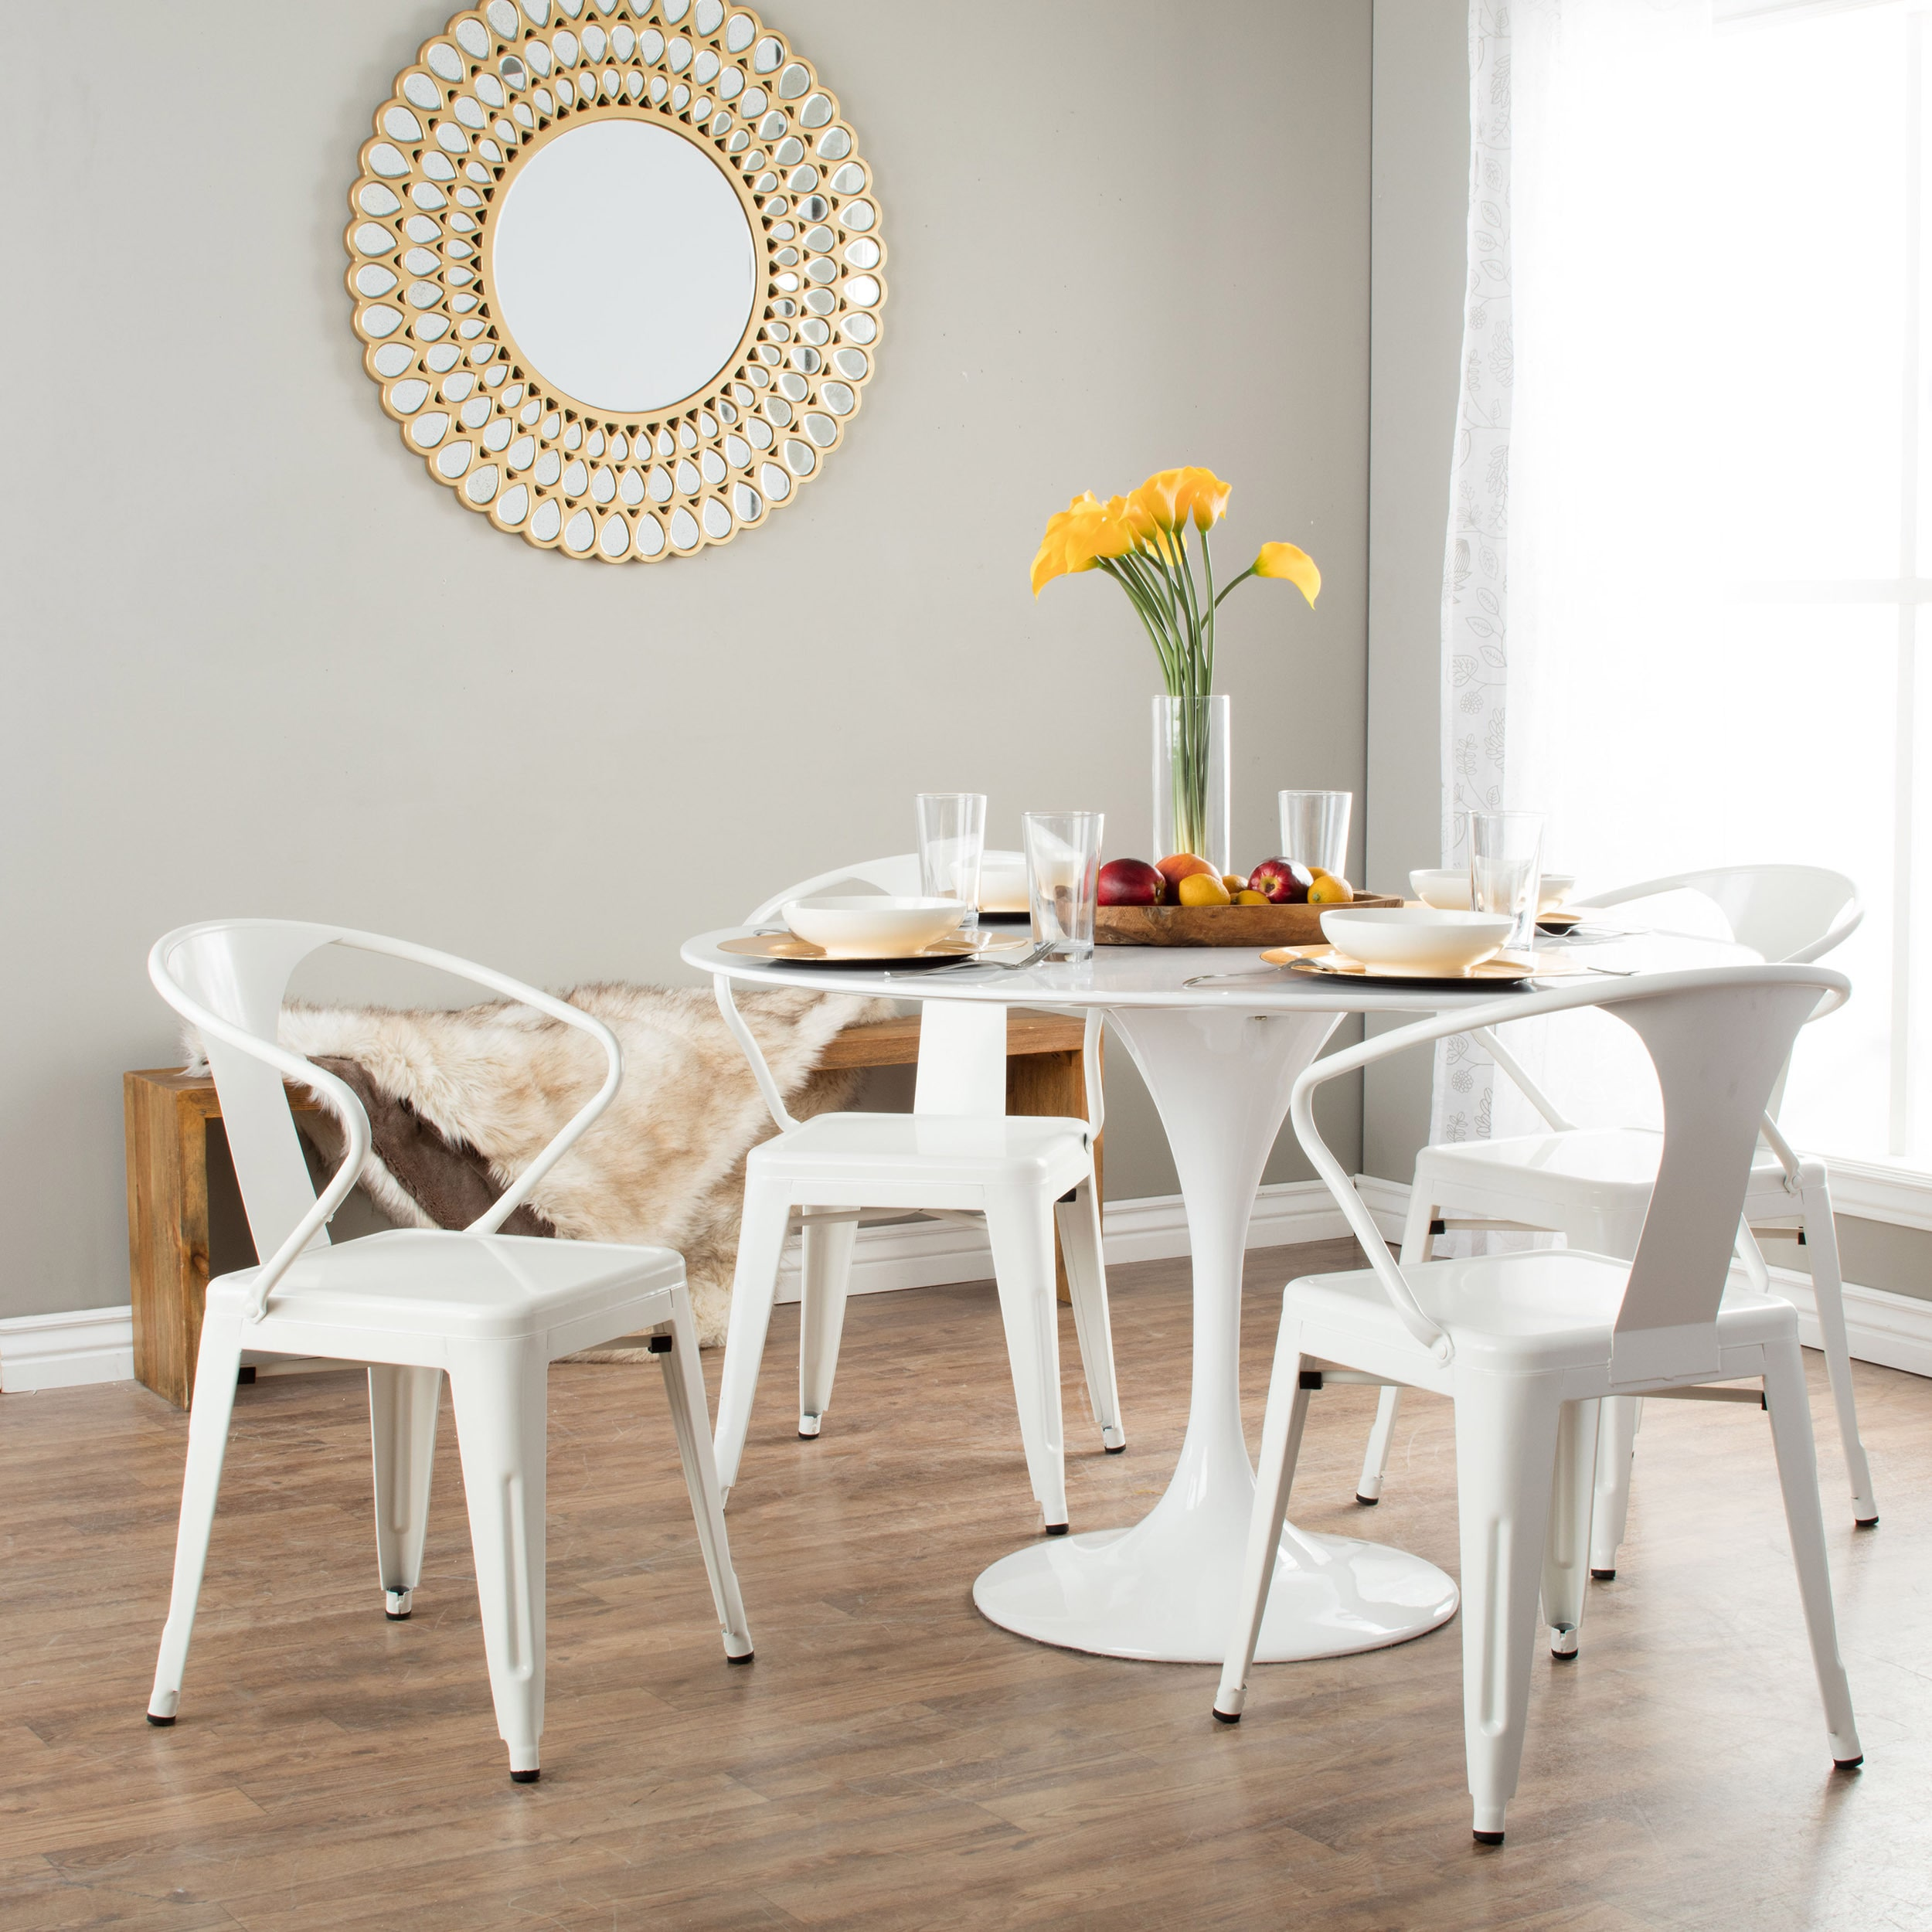 Tabourets Walmart I Love Living White Tabouret Stacking Chairs Set Of 4 Walmart